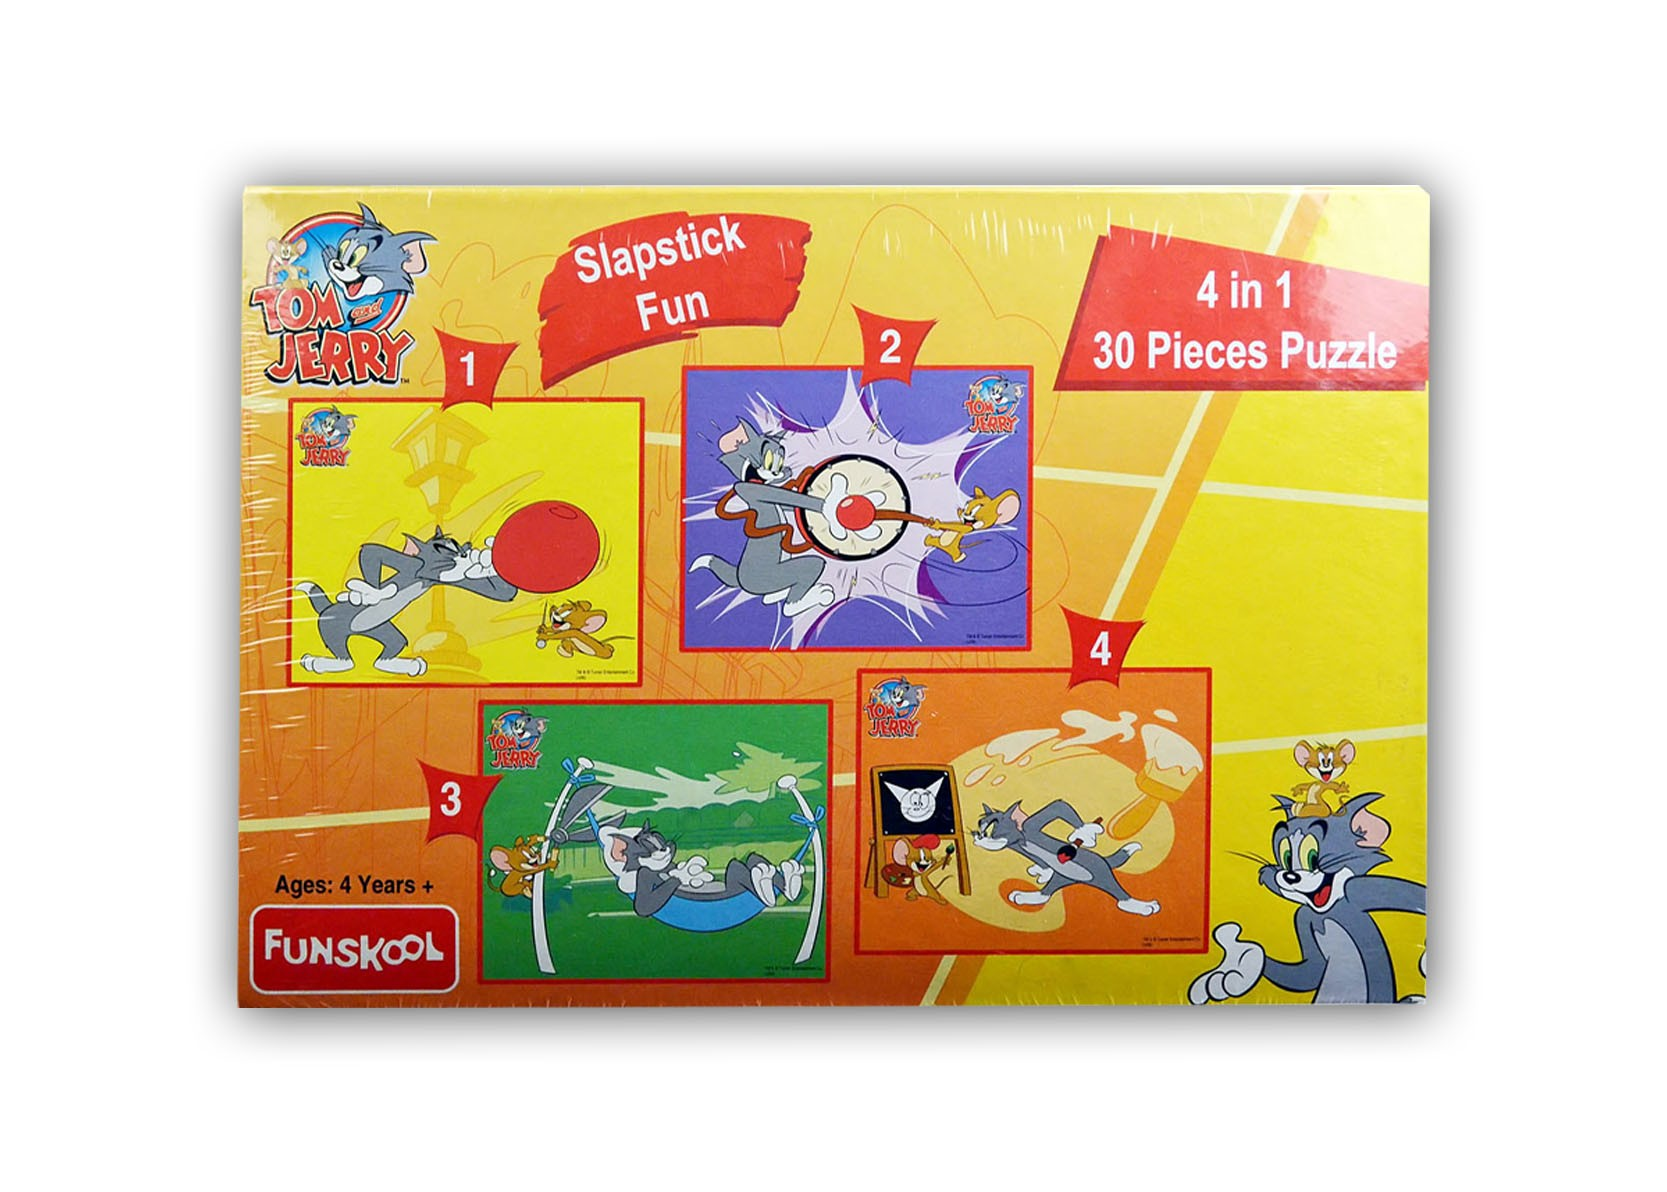 Tom n Jerry Slapstick Fun 4 in 1 Puzzle (30 Pieces)